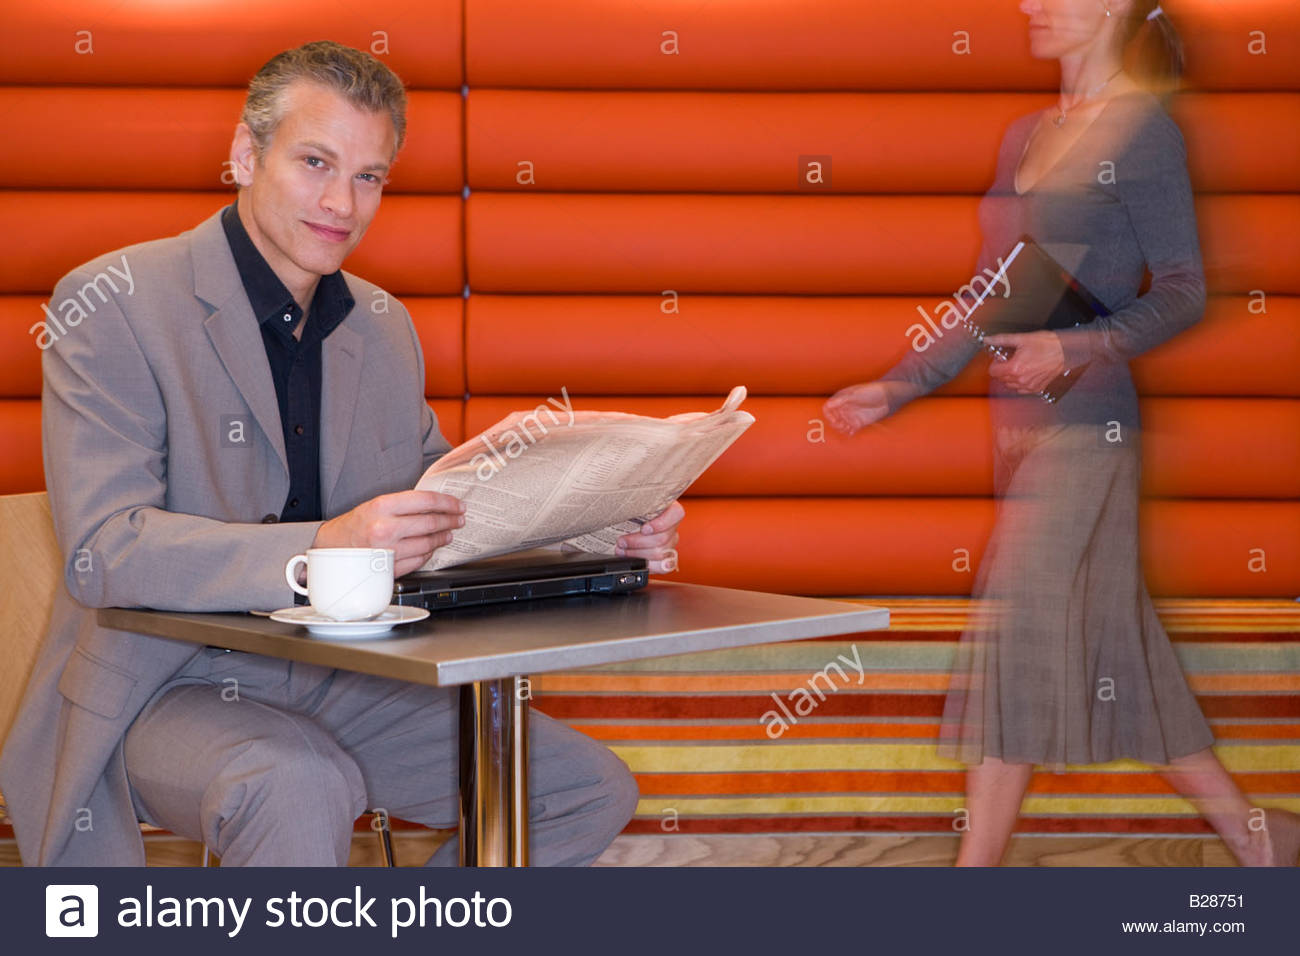 Businessman with laptop computer and newspaper in cafe, portrait - Stock Image